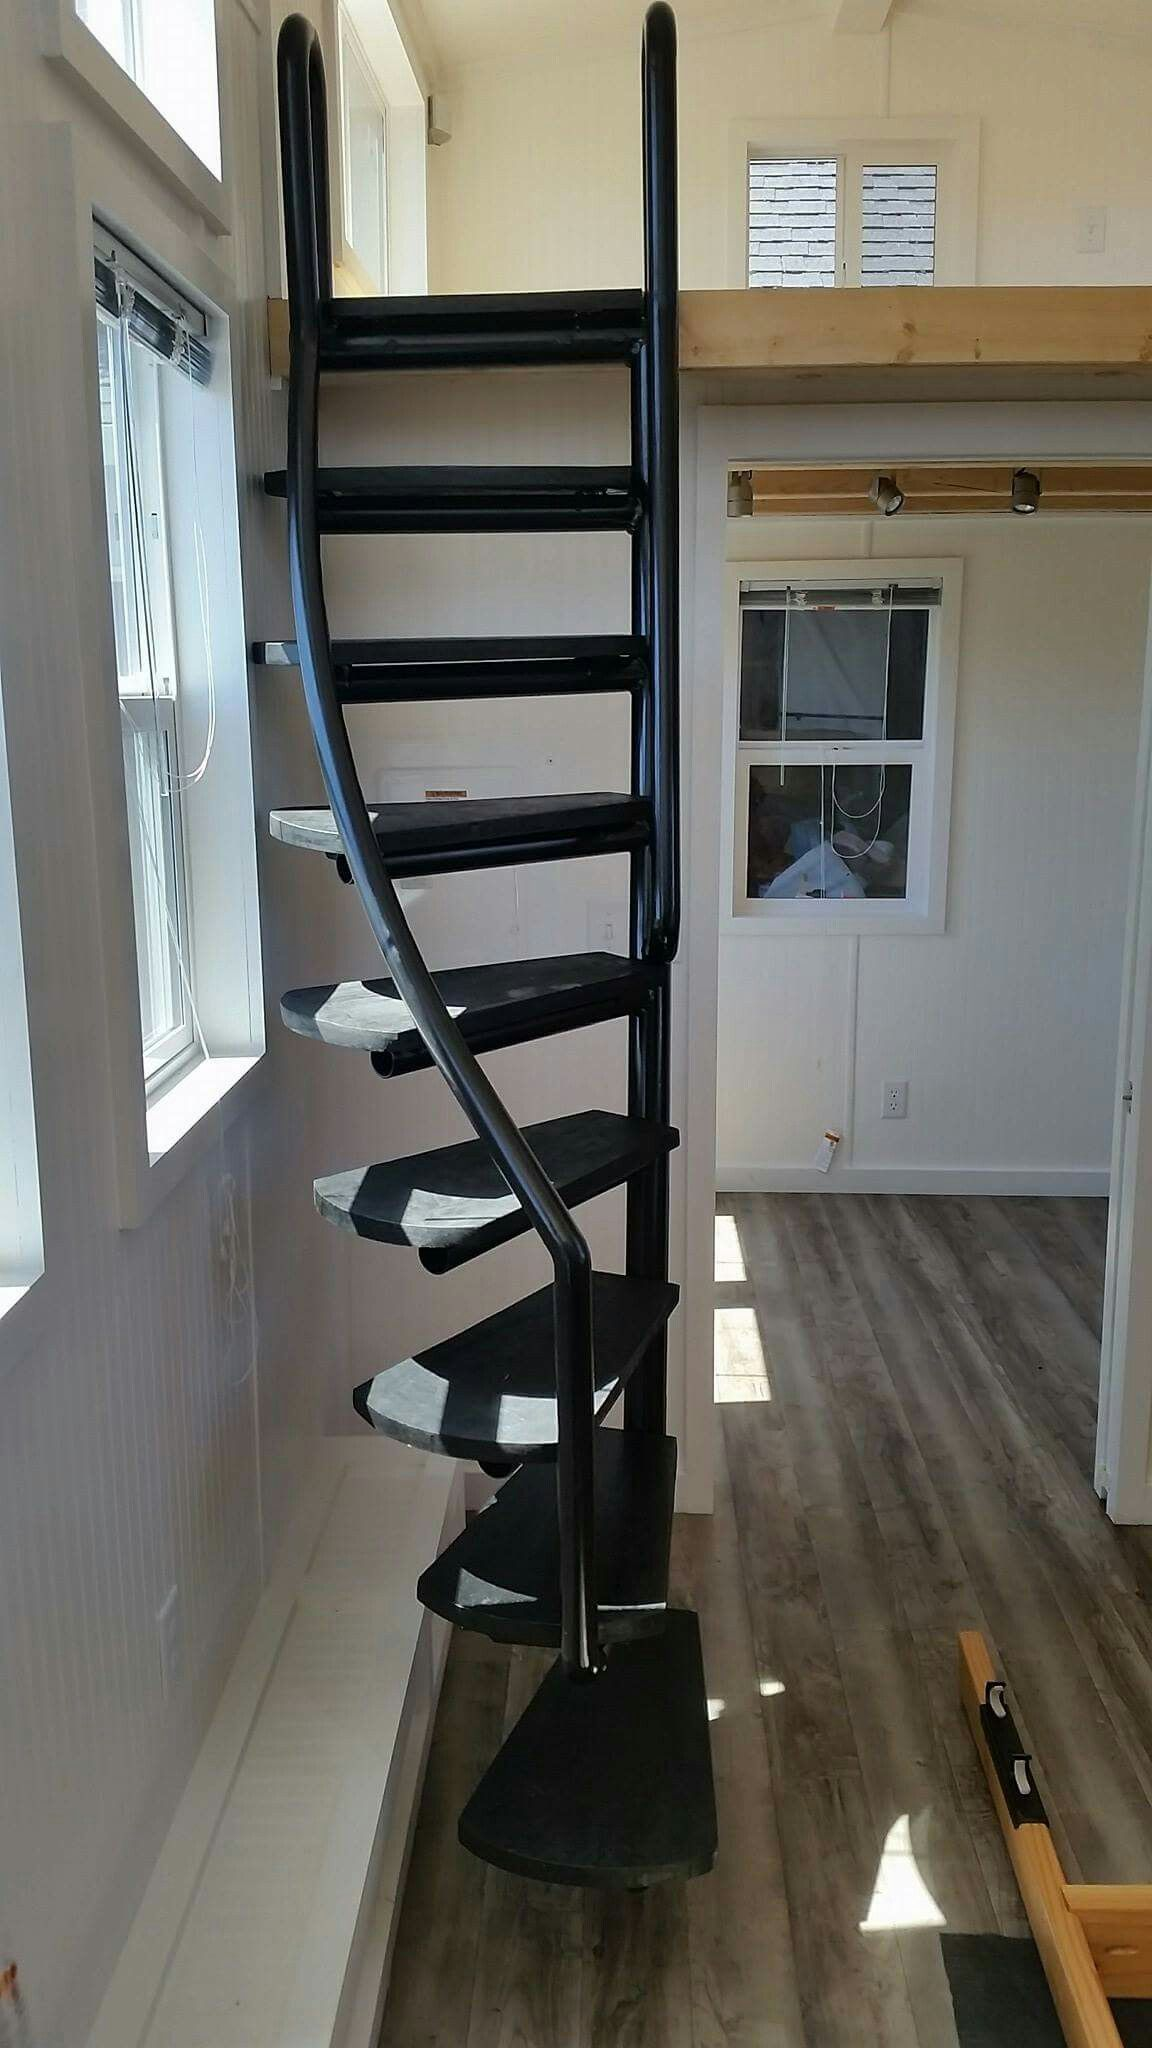 10 Crazy Tips And Tricks Attic Ideas Apartment Attic Storage Floor Simple Attic Remodel Attic Staircase Built I Attic Ladder Attic Staircase Tiny House Stairs